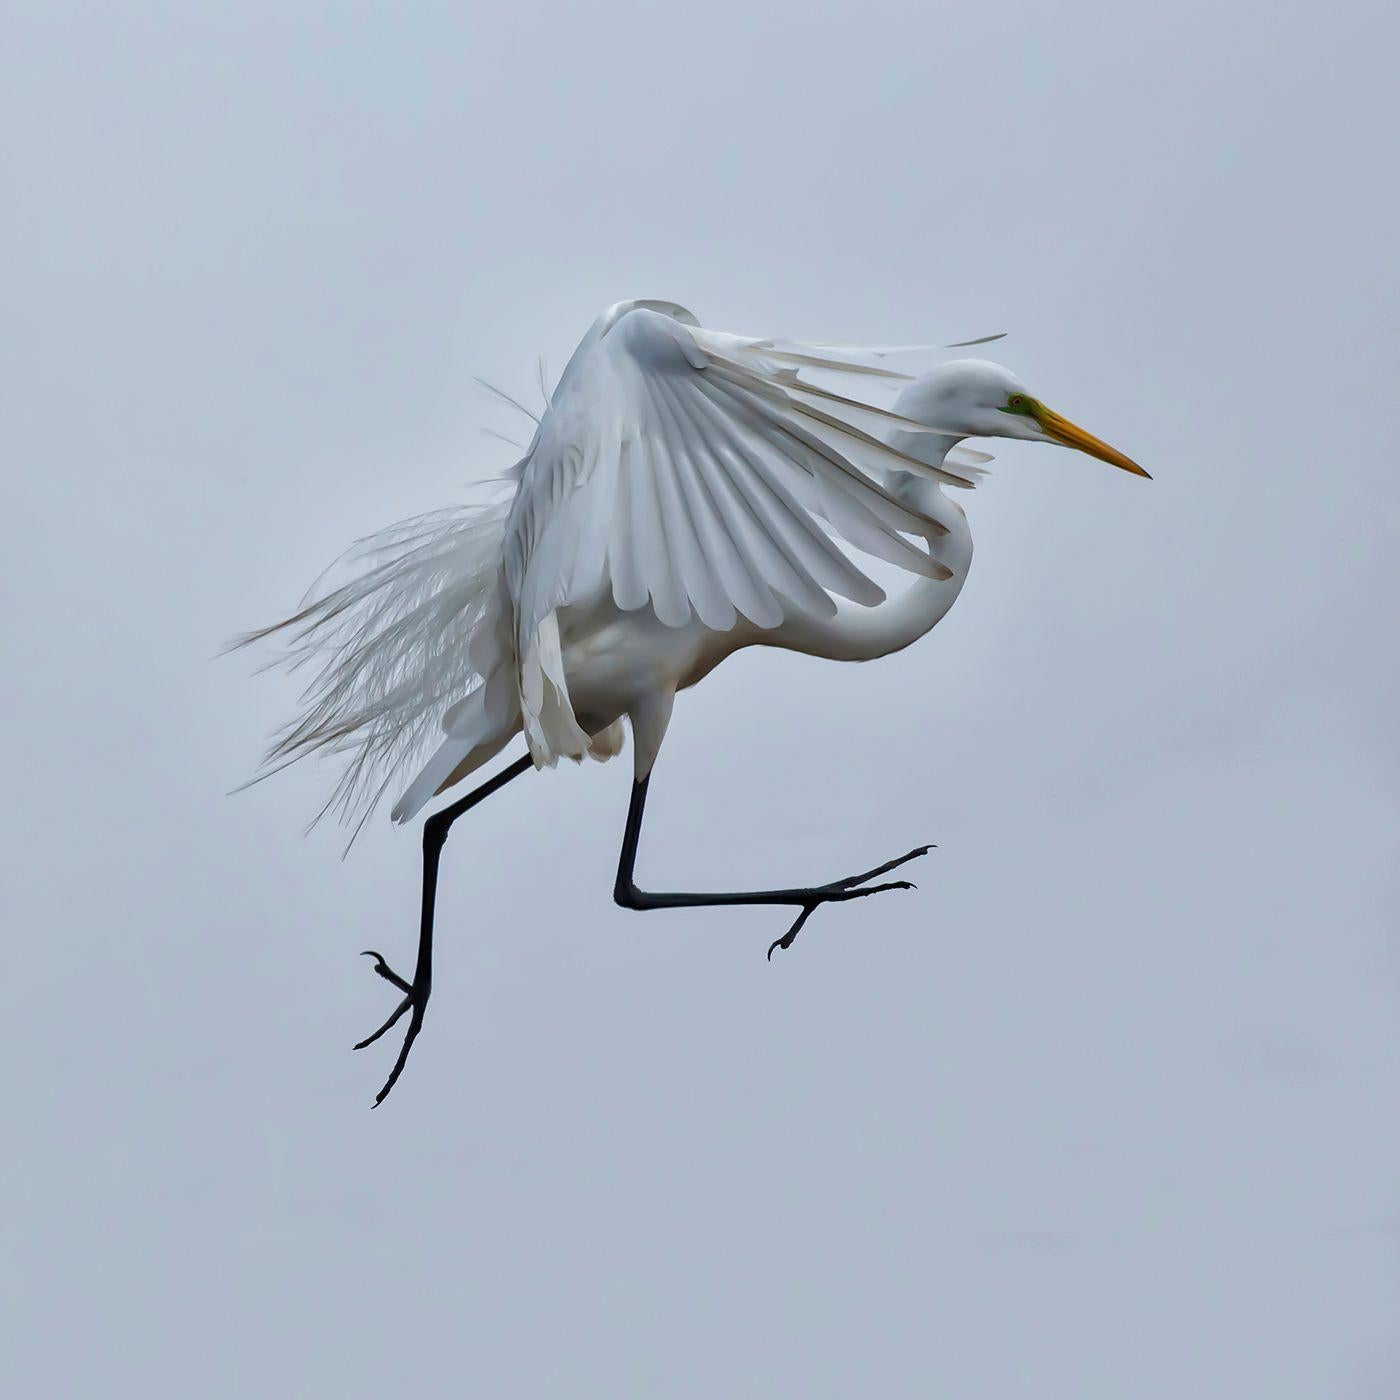 Walking On Air - Flying white crane bird suspended in air, feather details